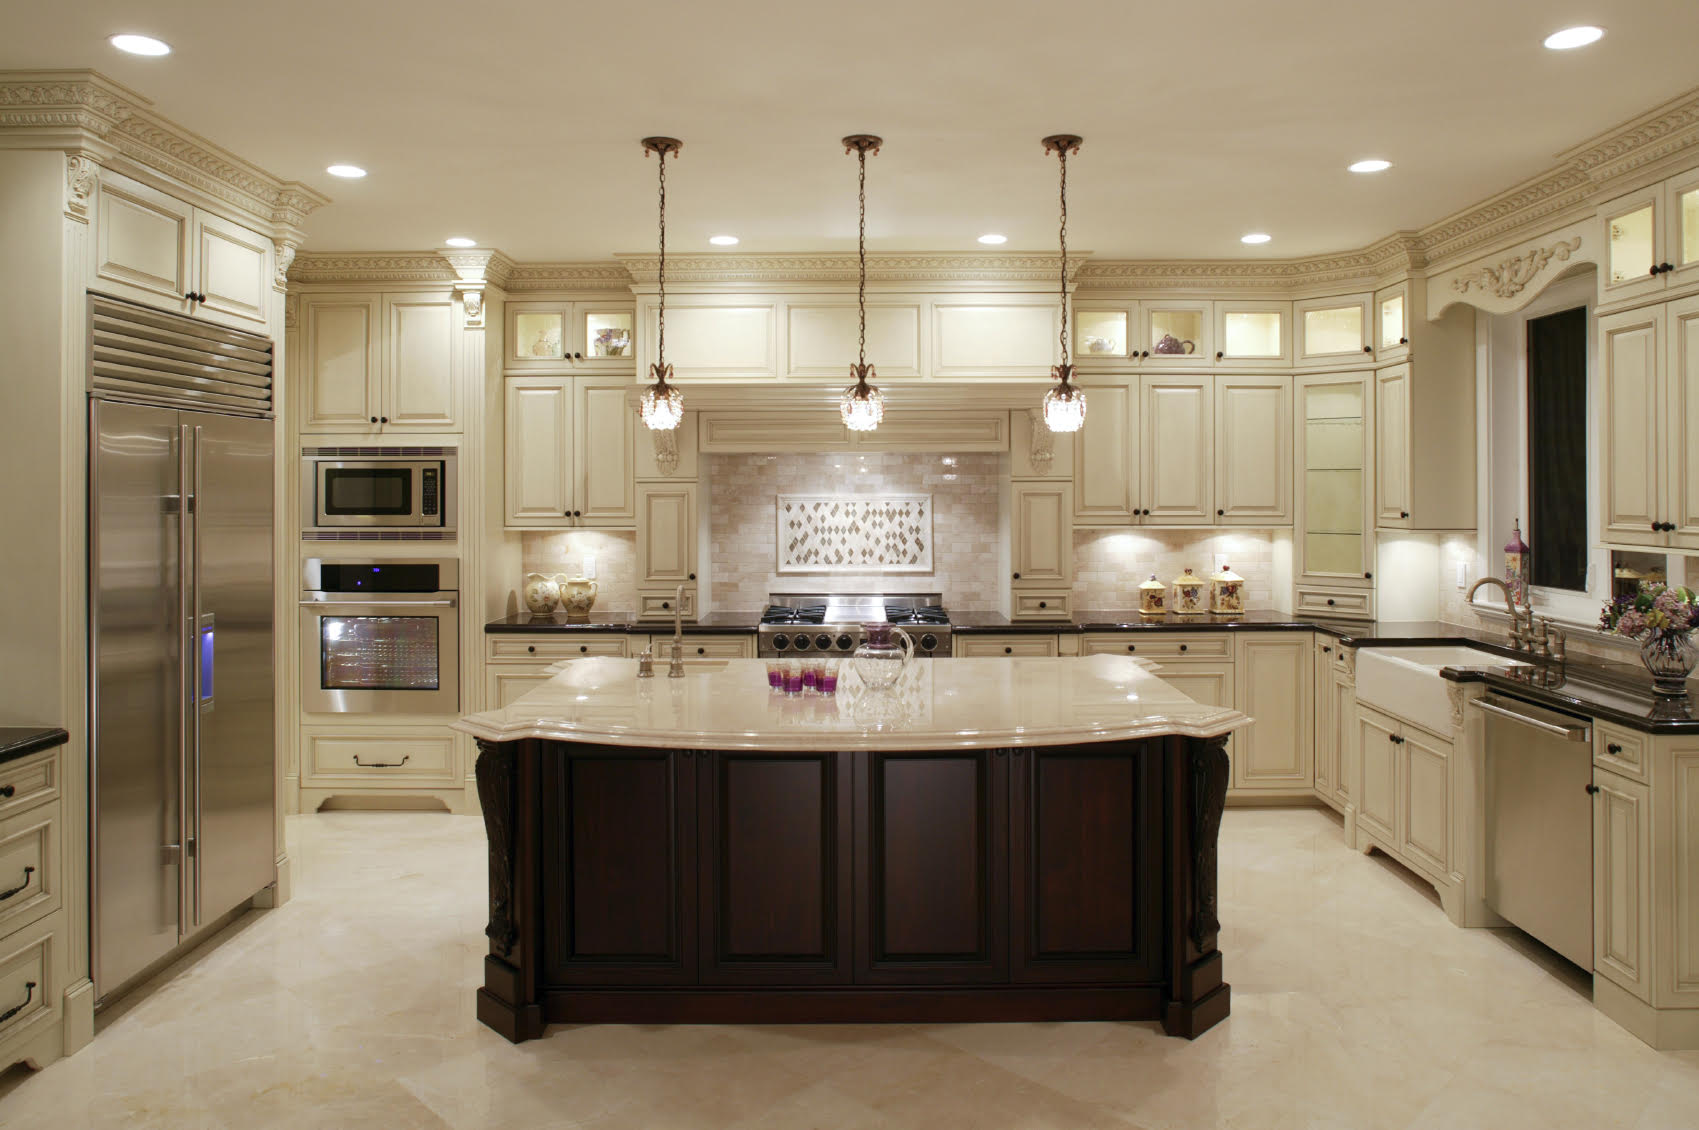 kitchen cabinet makers suites home depot cabinets sale toronto scarborough mississauga brampton oshawa contemporary